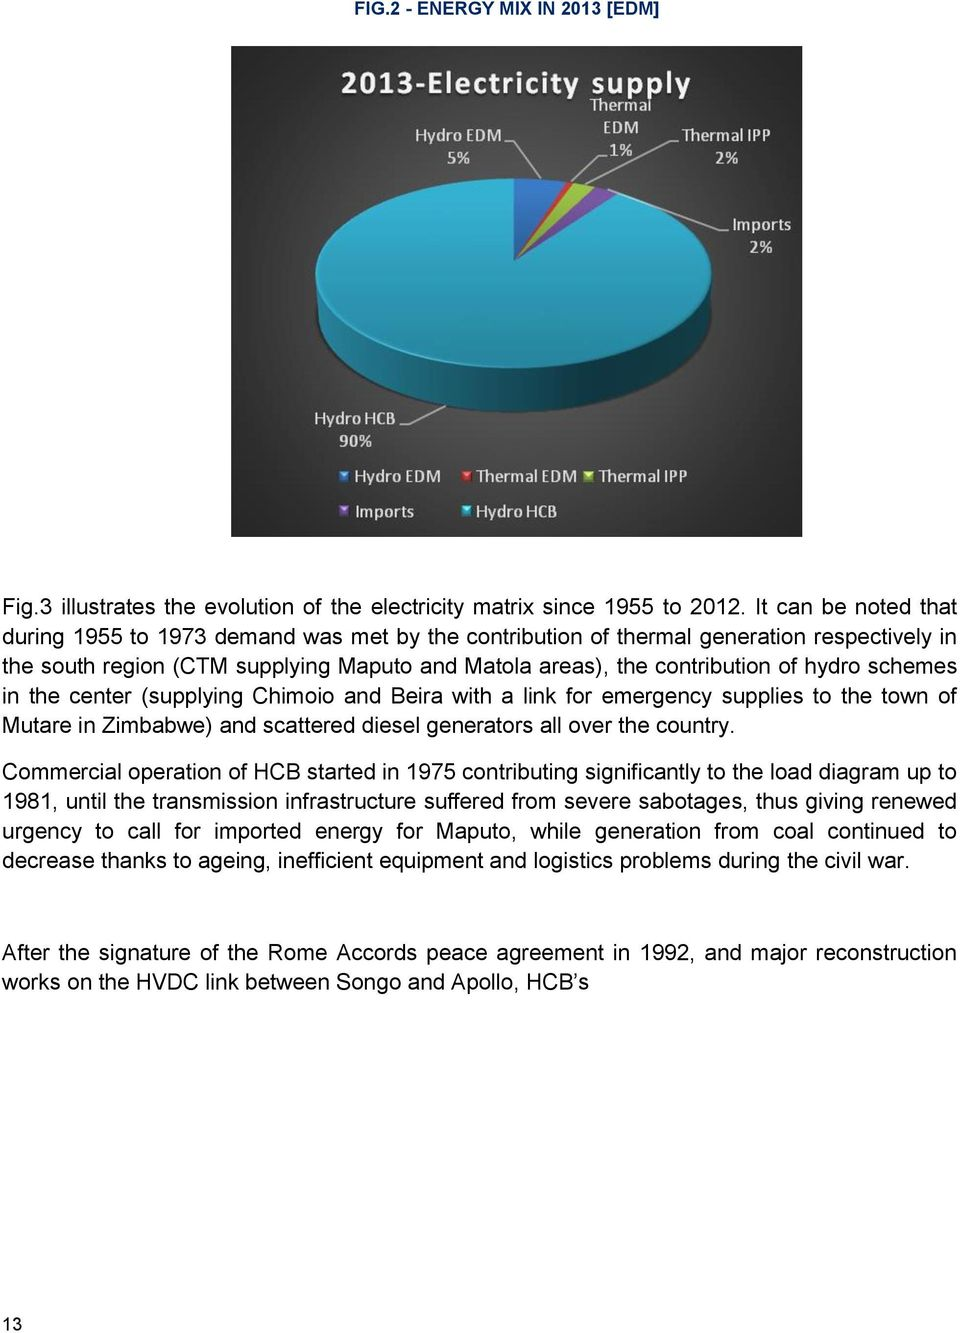 THE ELECTRICITY SECTOR IN MOZAMBIQUE - PDF